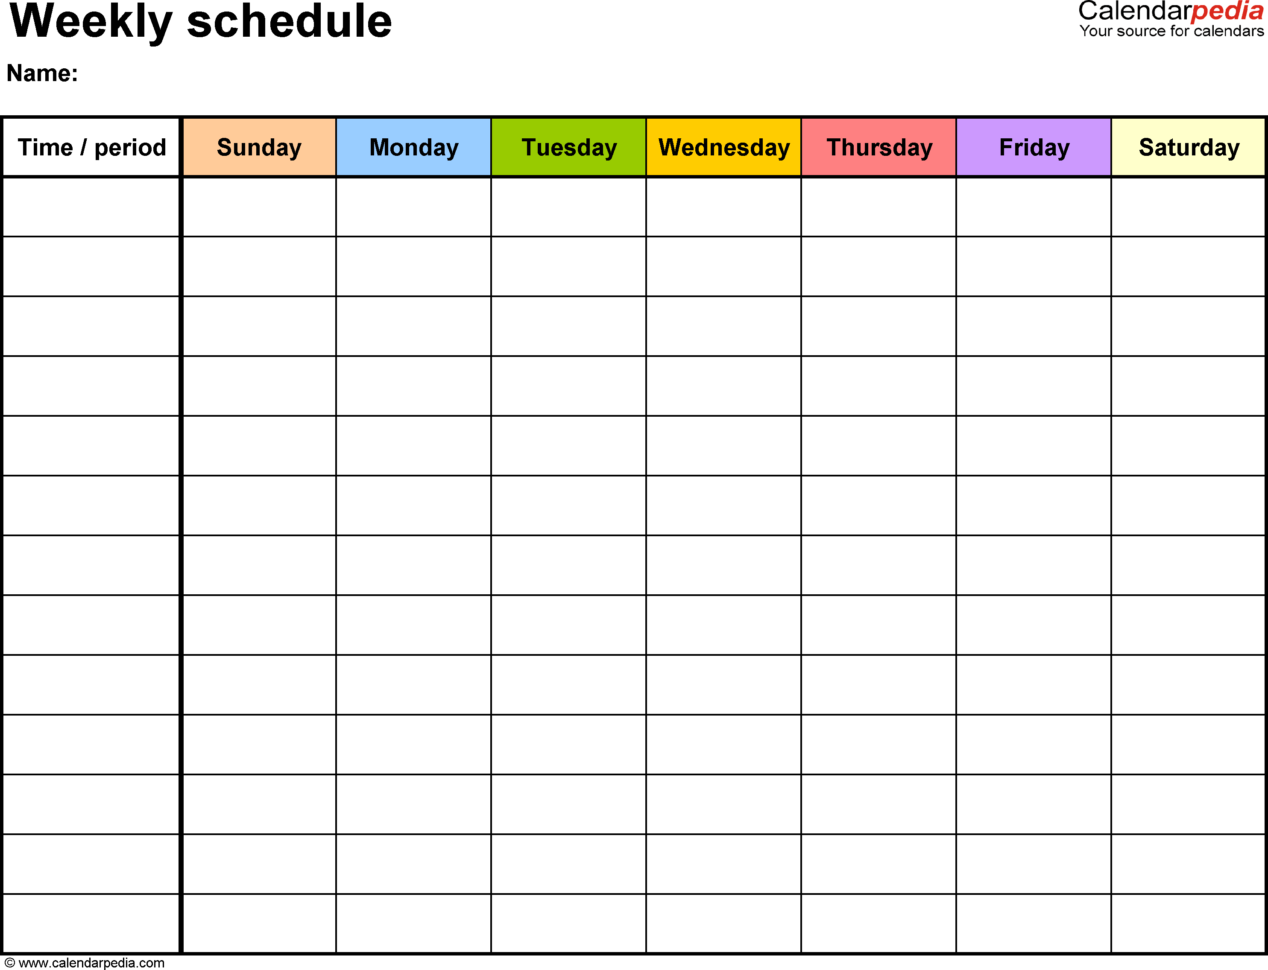 Spreadsheet Employee Schedule With Free Weekly Schedule Templates For Excel  18 Templates